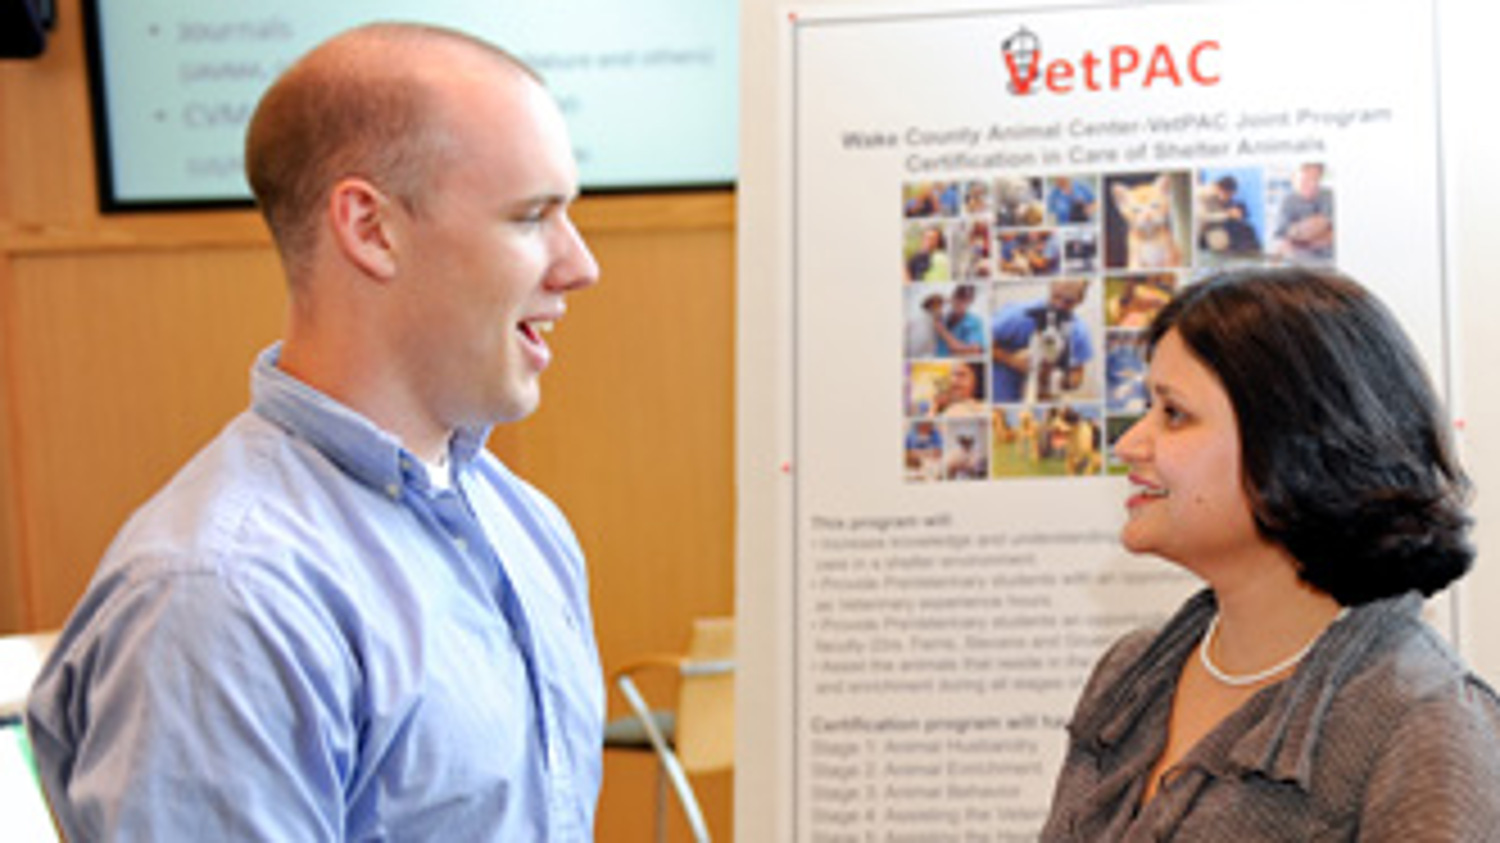 Dr. Shweta Trivedi, VetPAC director (right), speaks with James Tyndall, a CALS senior in animal science. Tyndall recently was elected 2010-11 national president of the American Pre-Veterinary Medical Association.